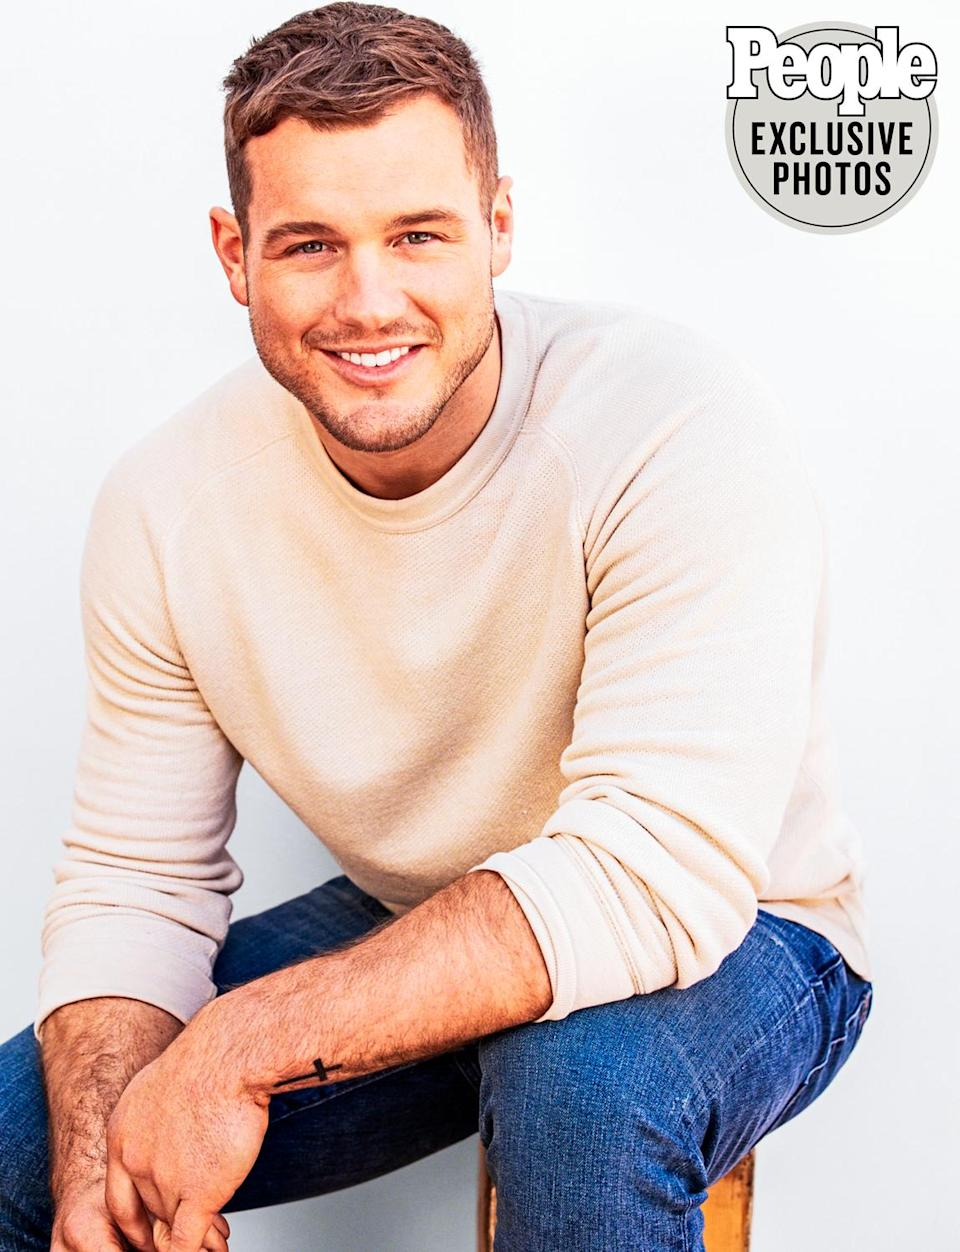 """<p>Underwood will <a href=""""https://people.com/tv/former-bachelor-colton-underwood-documenting-his-coming-out-journey-for-upcoming-netflix-series/"""" rel=""""nofollow noopener"""" target=""""_blank"""" data-ylk=""""slk:share his coming out journey"""" class=""""link rapid-noclick-resp"""">share his coming out journey</a> in an upcoming Netflix reality series, a source confirmed to PEOPLE.</p> <p>A film crew has been following the former <em>Bachelor</em> star over the last few weeks, <a href=""""https://www.tmz.com/2021/04/14/colton-underwood-gay-man-journey-filmed-reality-series-netflix/"""" rel=""""nofollow noopener"""" target=""""_blank"""" data-ylk=""""slk:according to"""" class=""""link rapid-noclick-resp"""">according to</a> TMZ. The series will focus on Underwood navigating life as a gay man and will reportedly feature appearances from well-known figures in the LBGTQ community.</p>"""